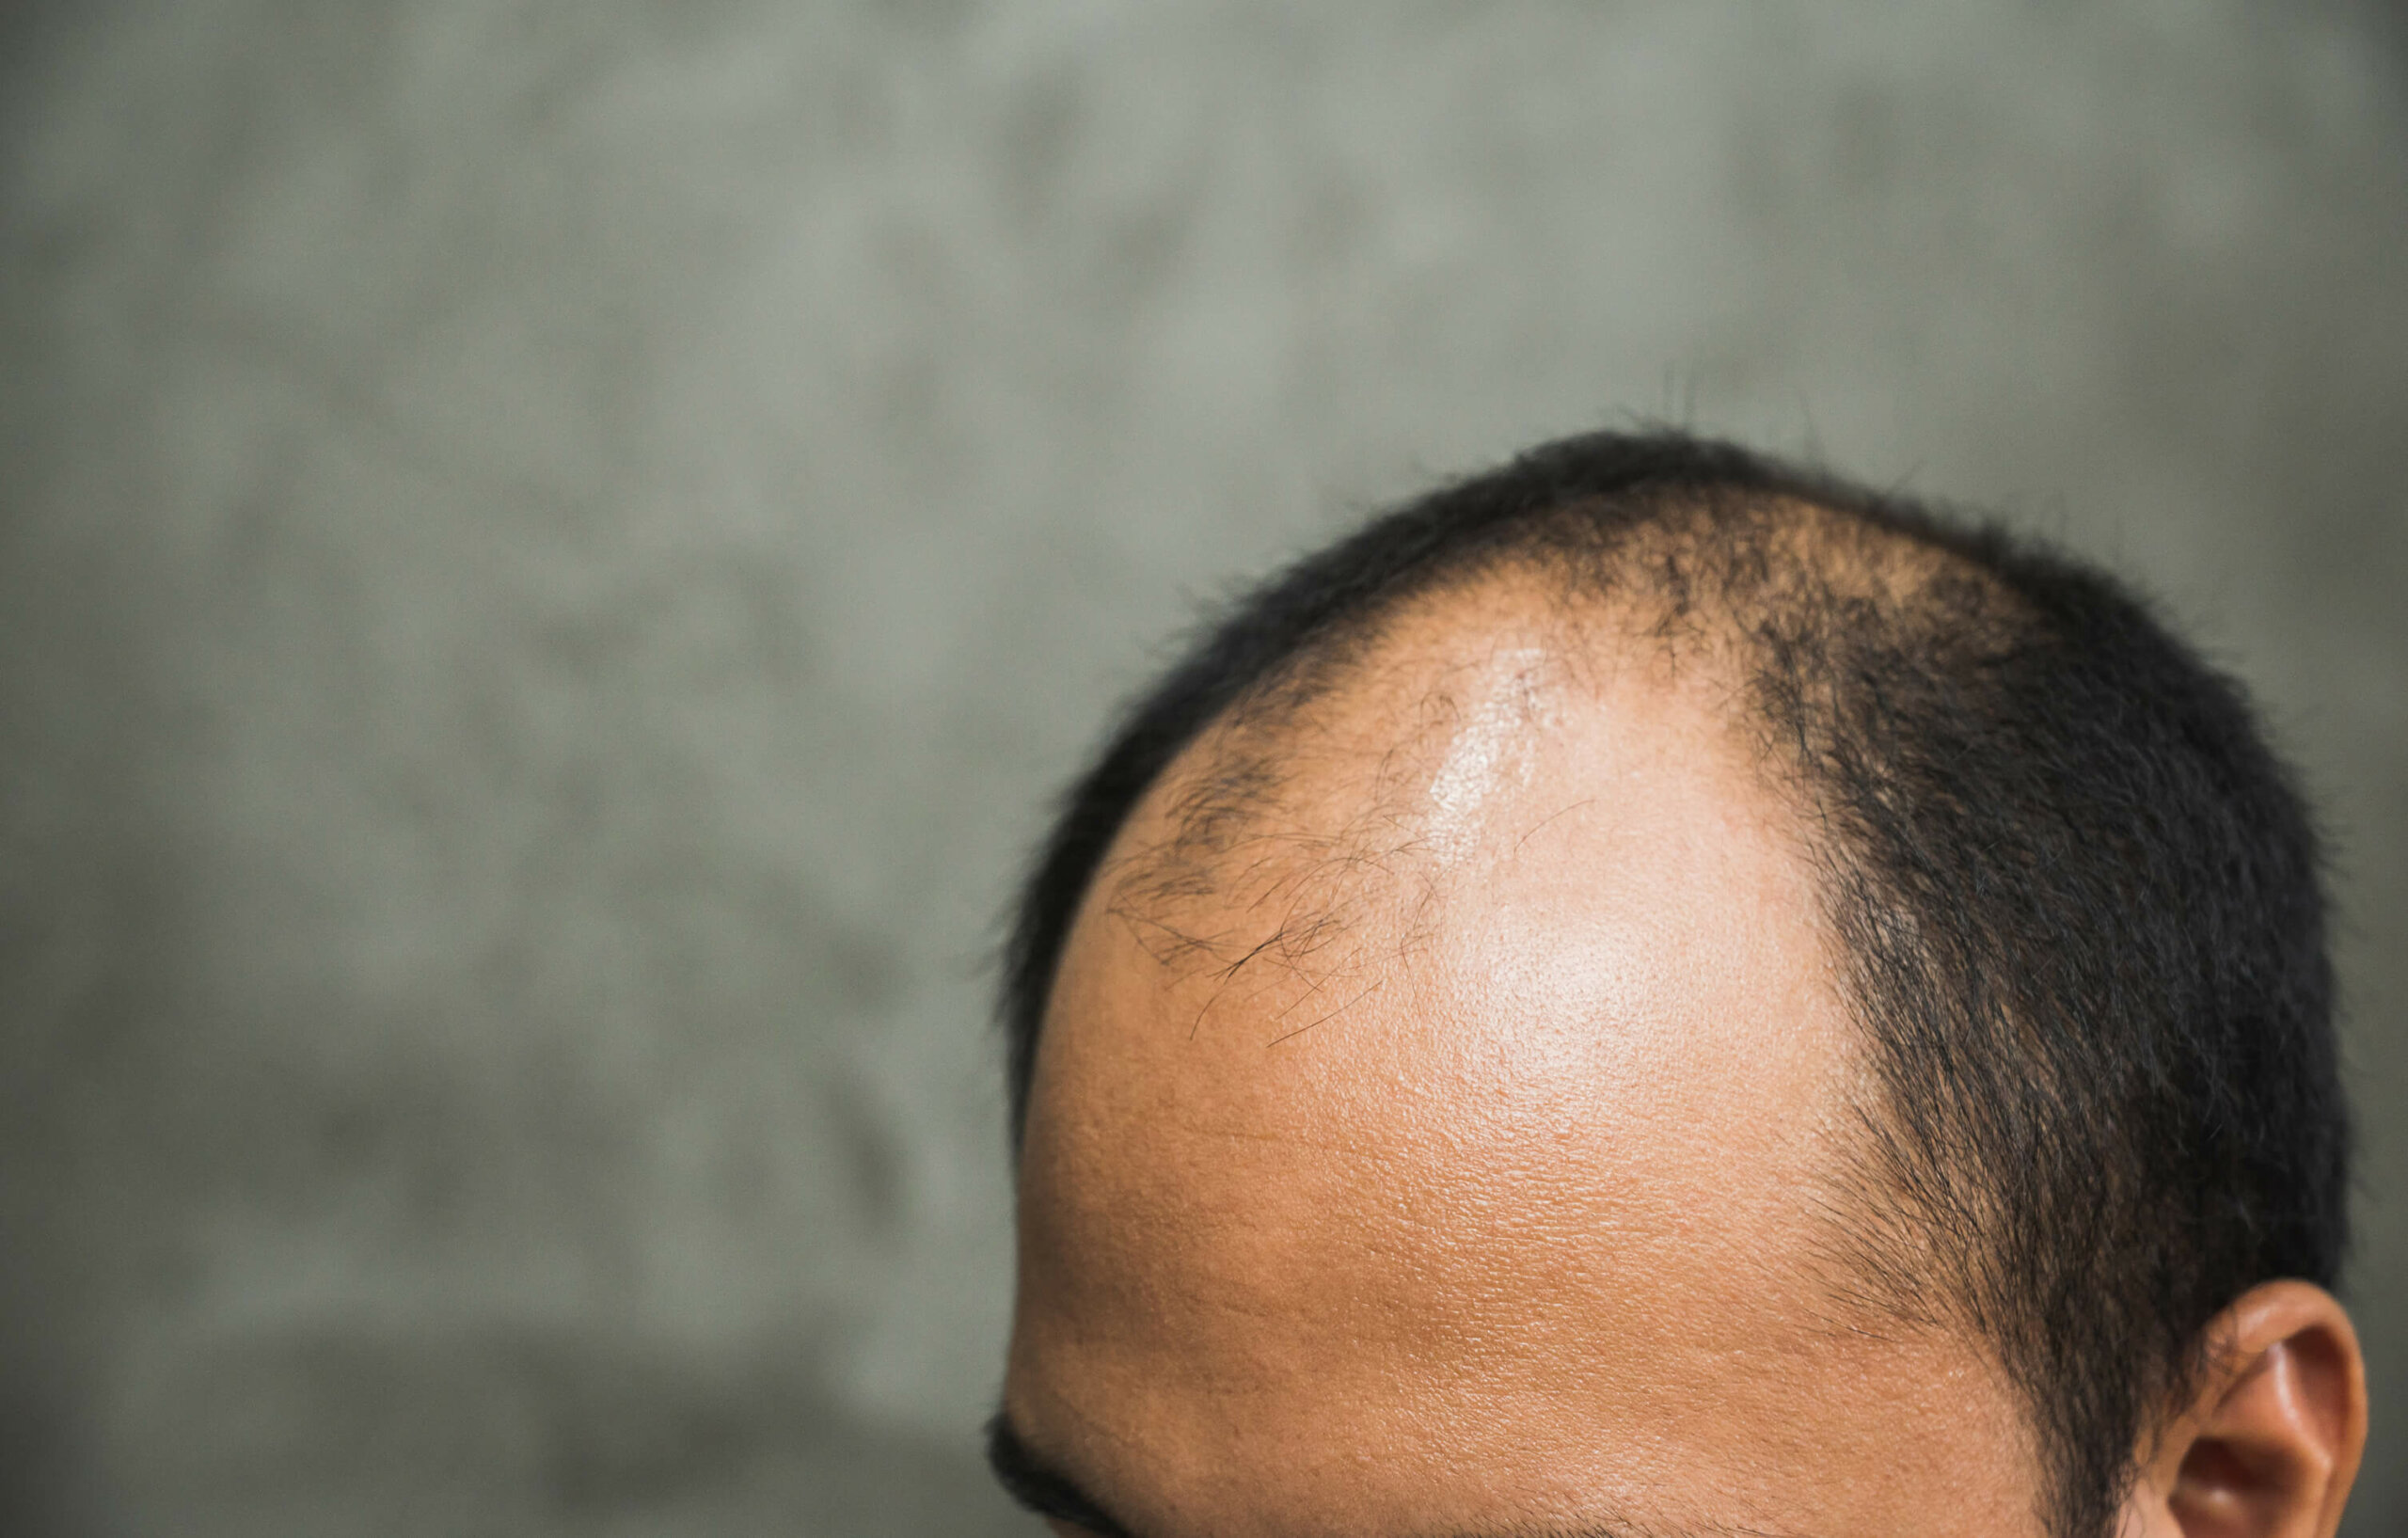 A close-up of an Asian man's head focusing on hair loss affecting both the front and crown of the head